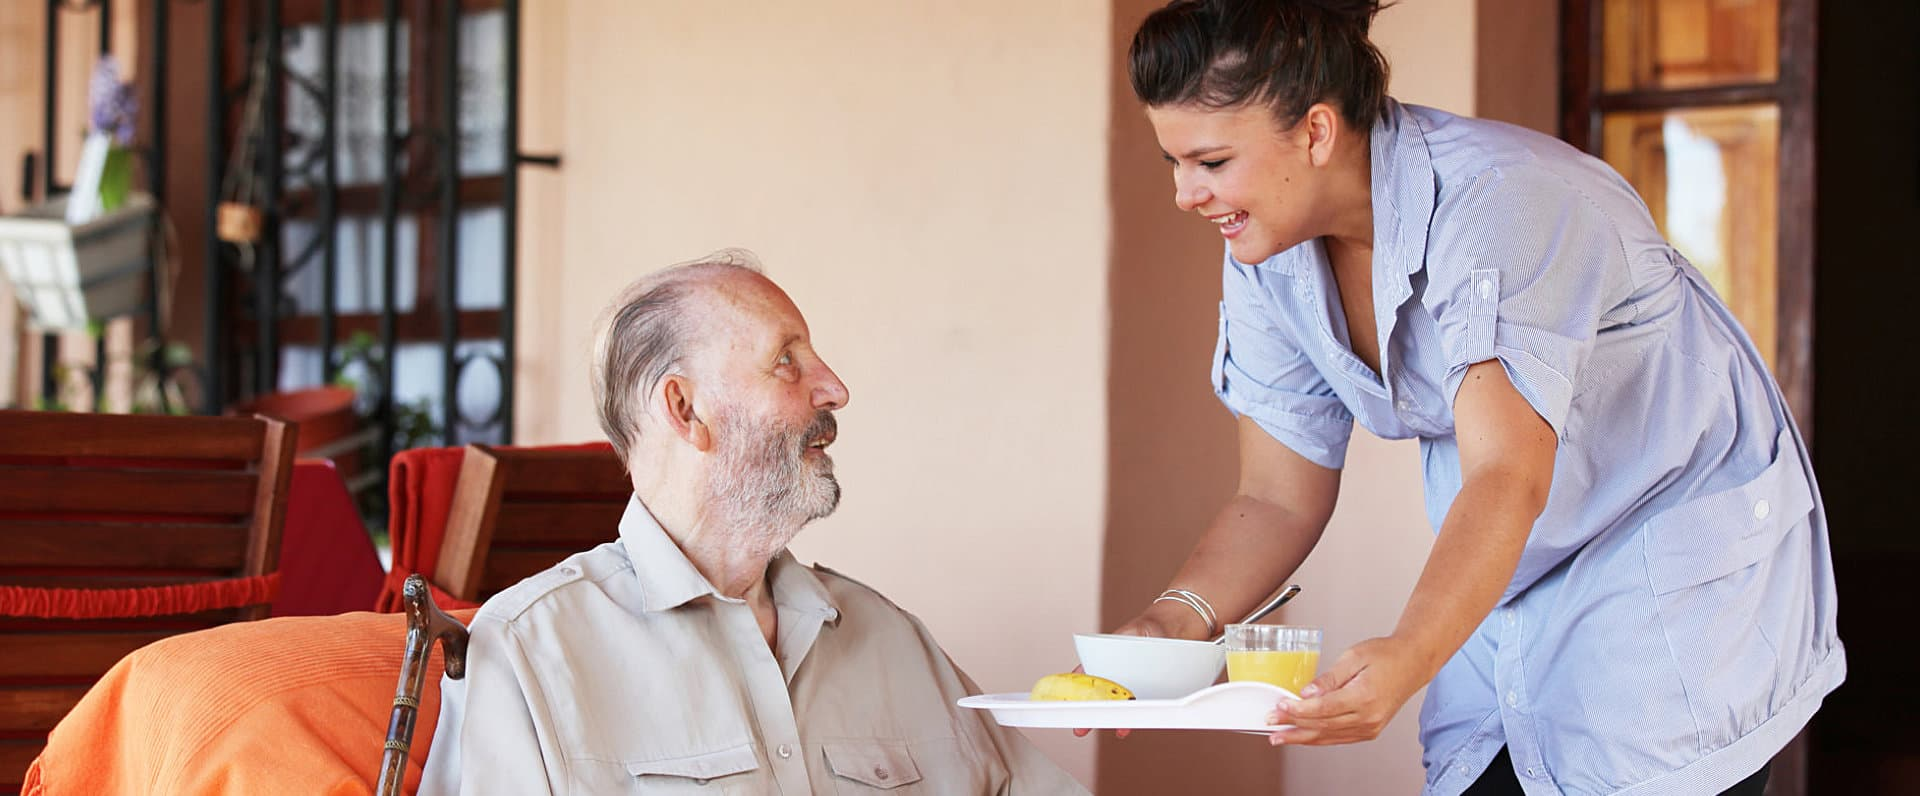 caregiver preparing food for senior man